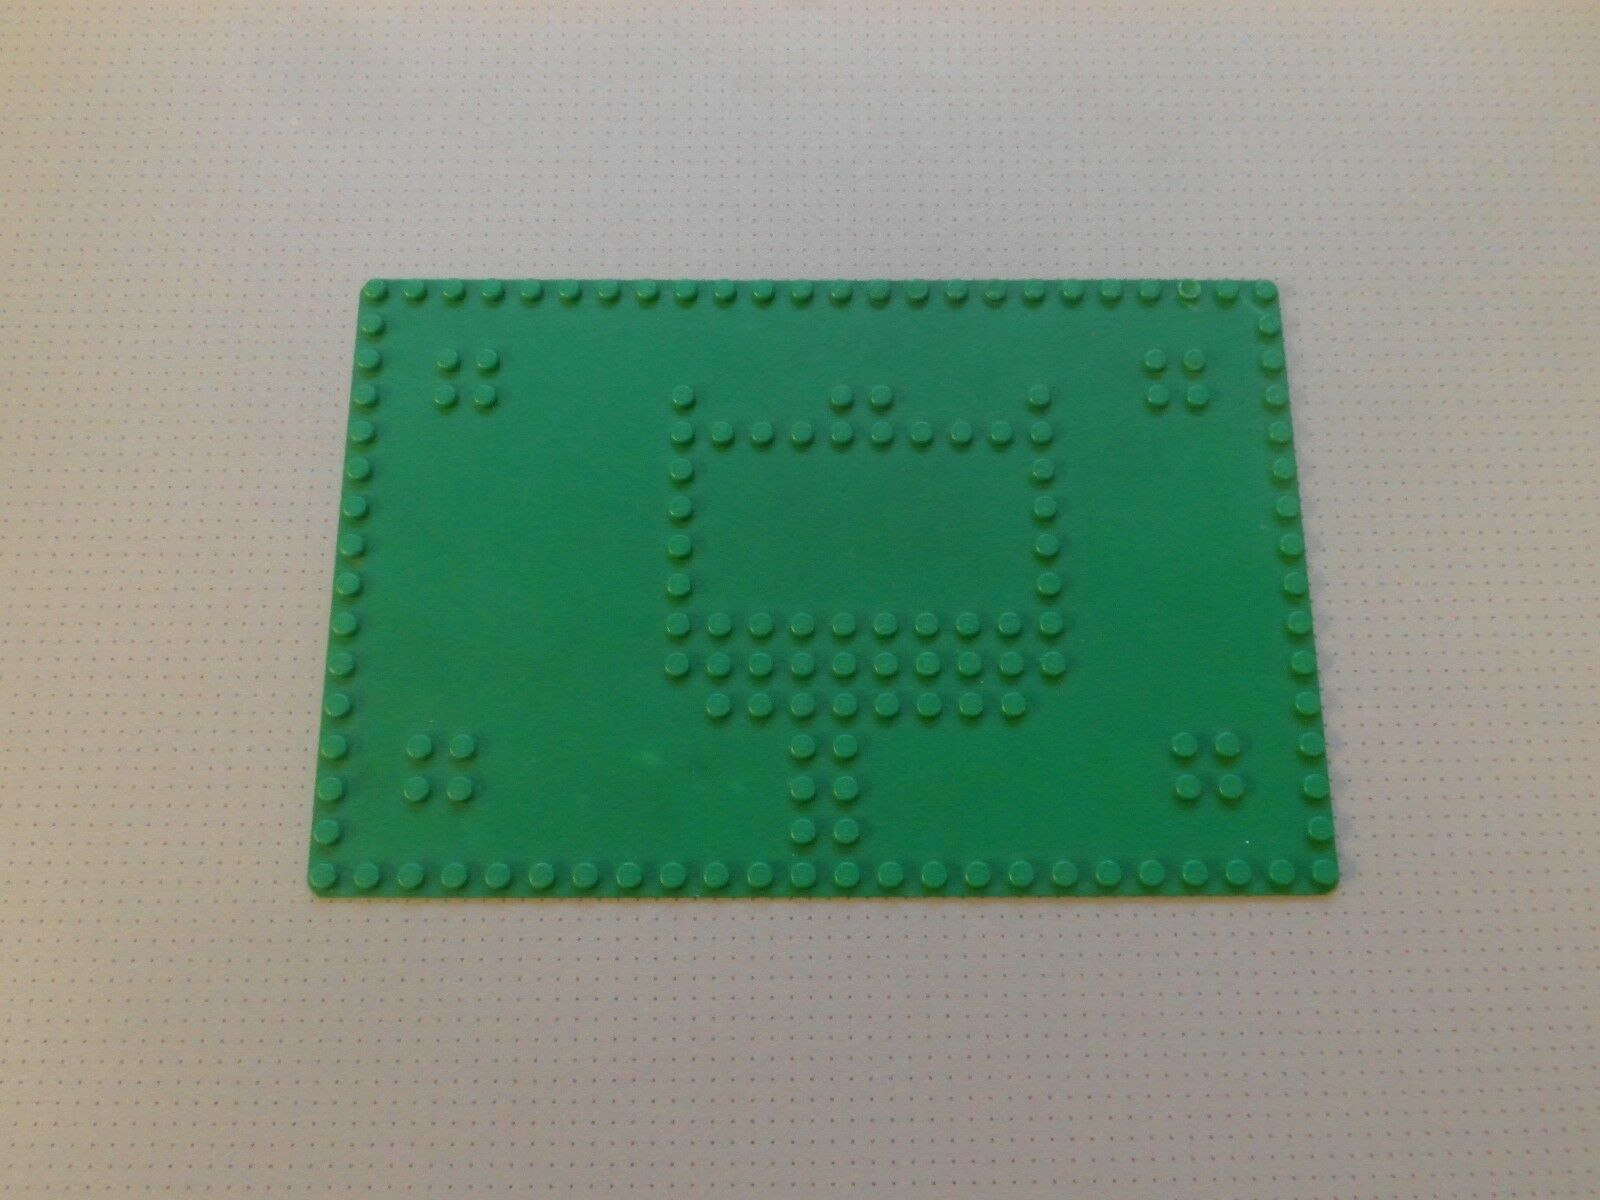 Lego base plate 16 x 24 Studs vert-RARE 1960's - from set 080 (0903)